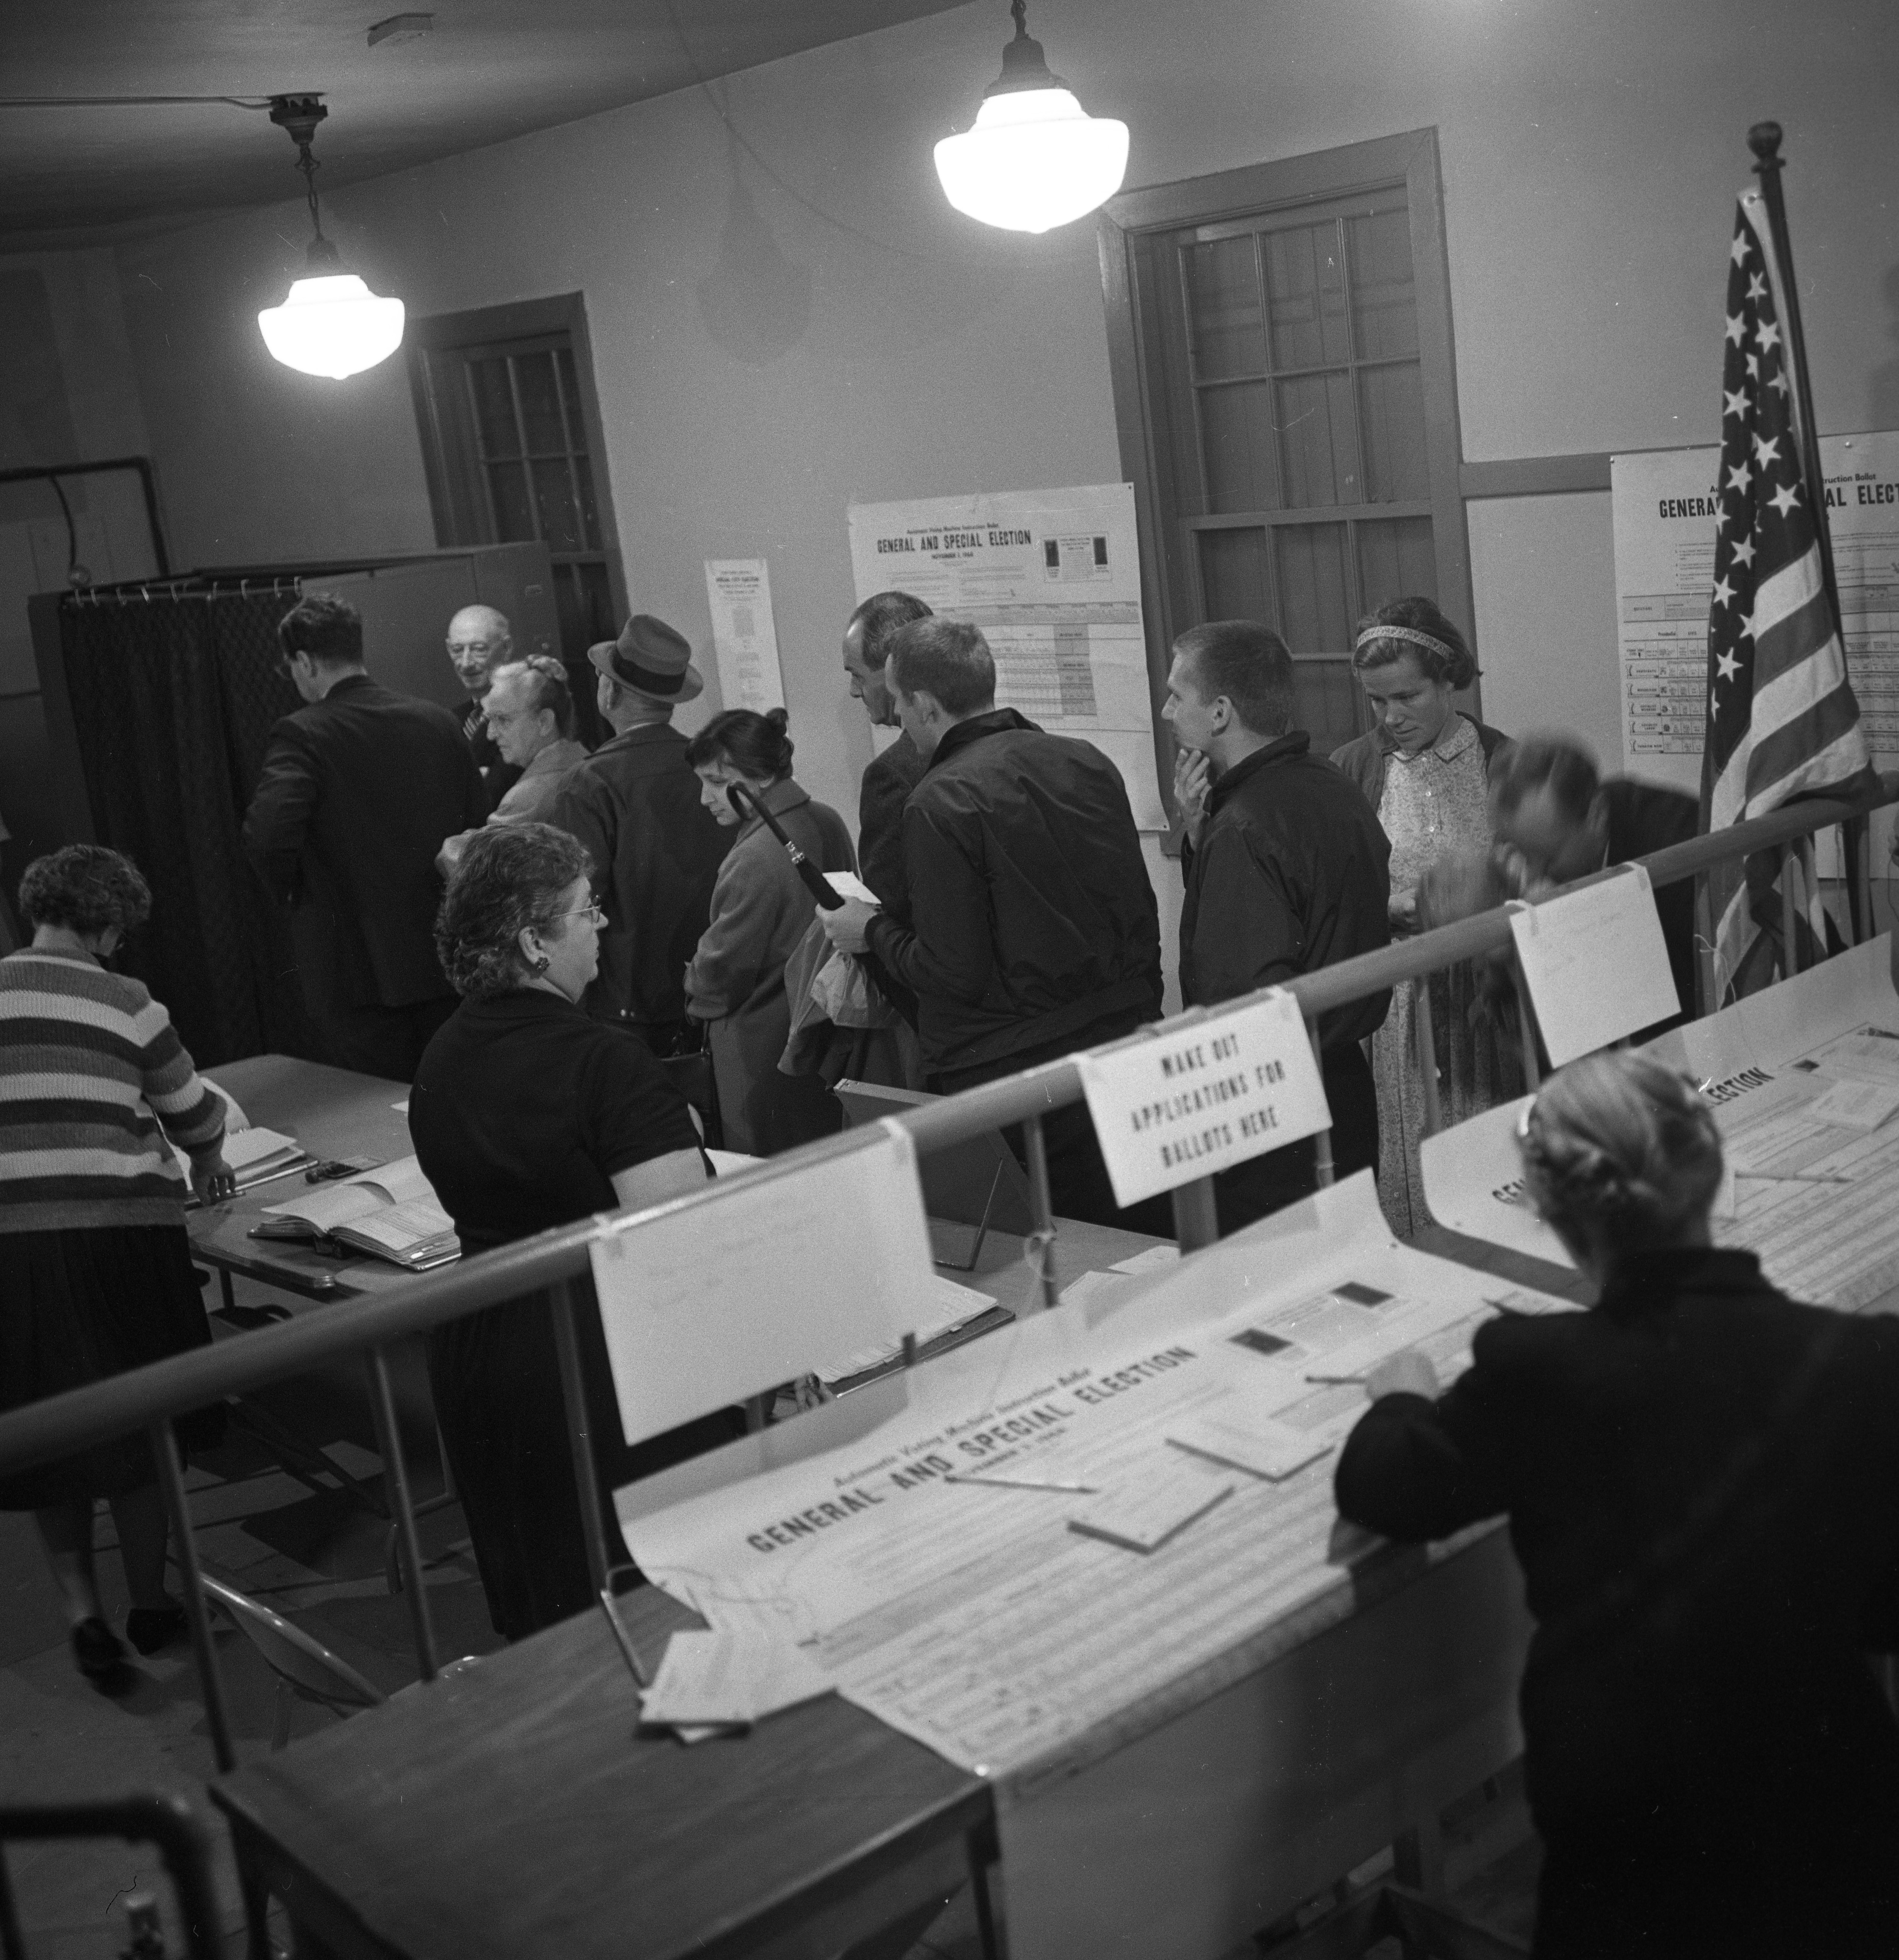 Busy Poll Workers at Ann Arbor Mary St. Polling Place In 1964 Presidential Election, November 1964 image